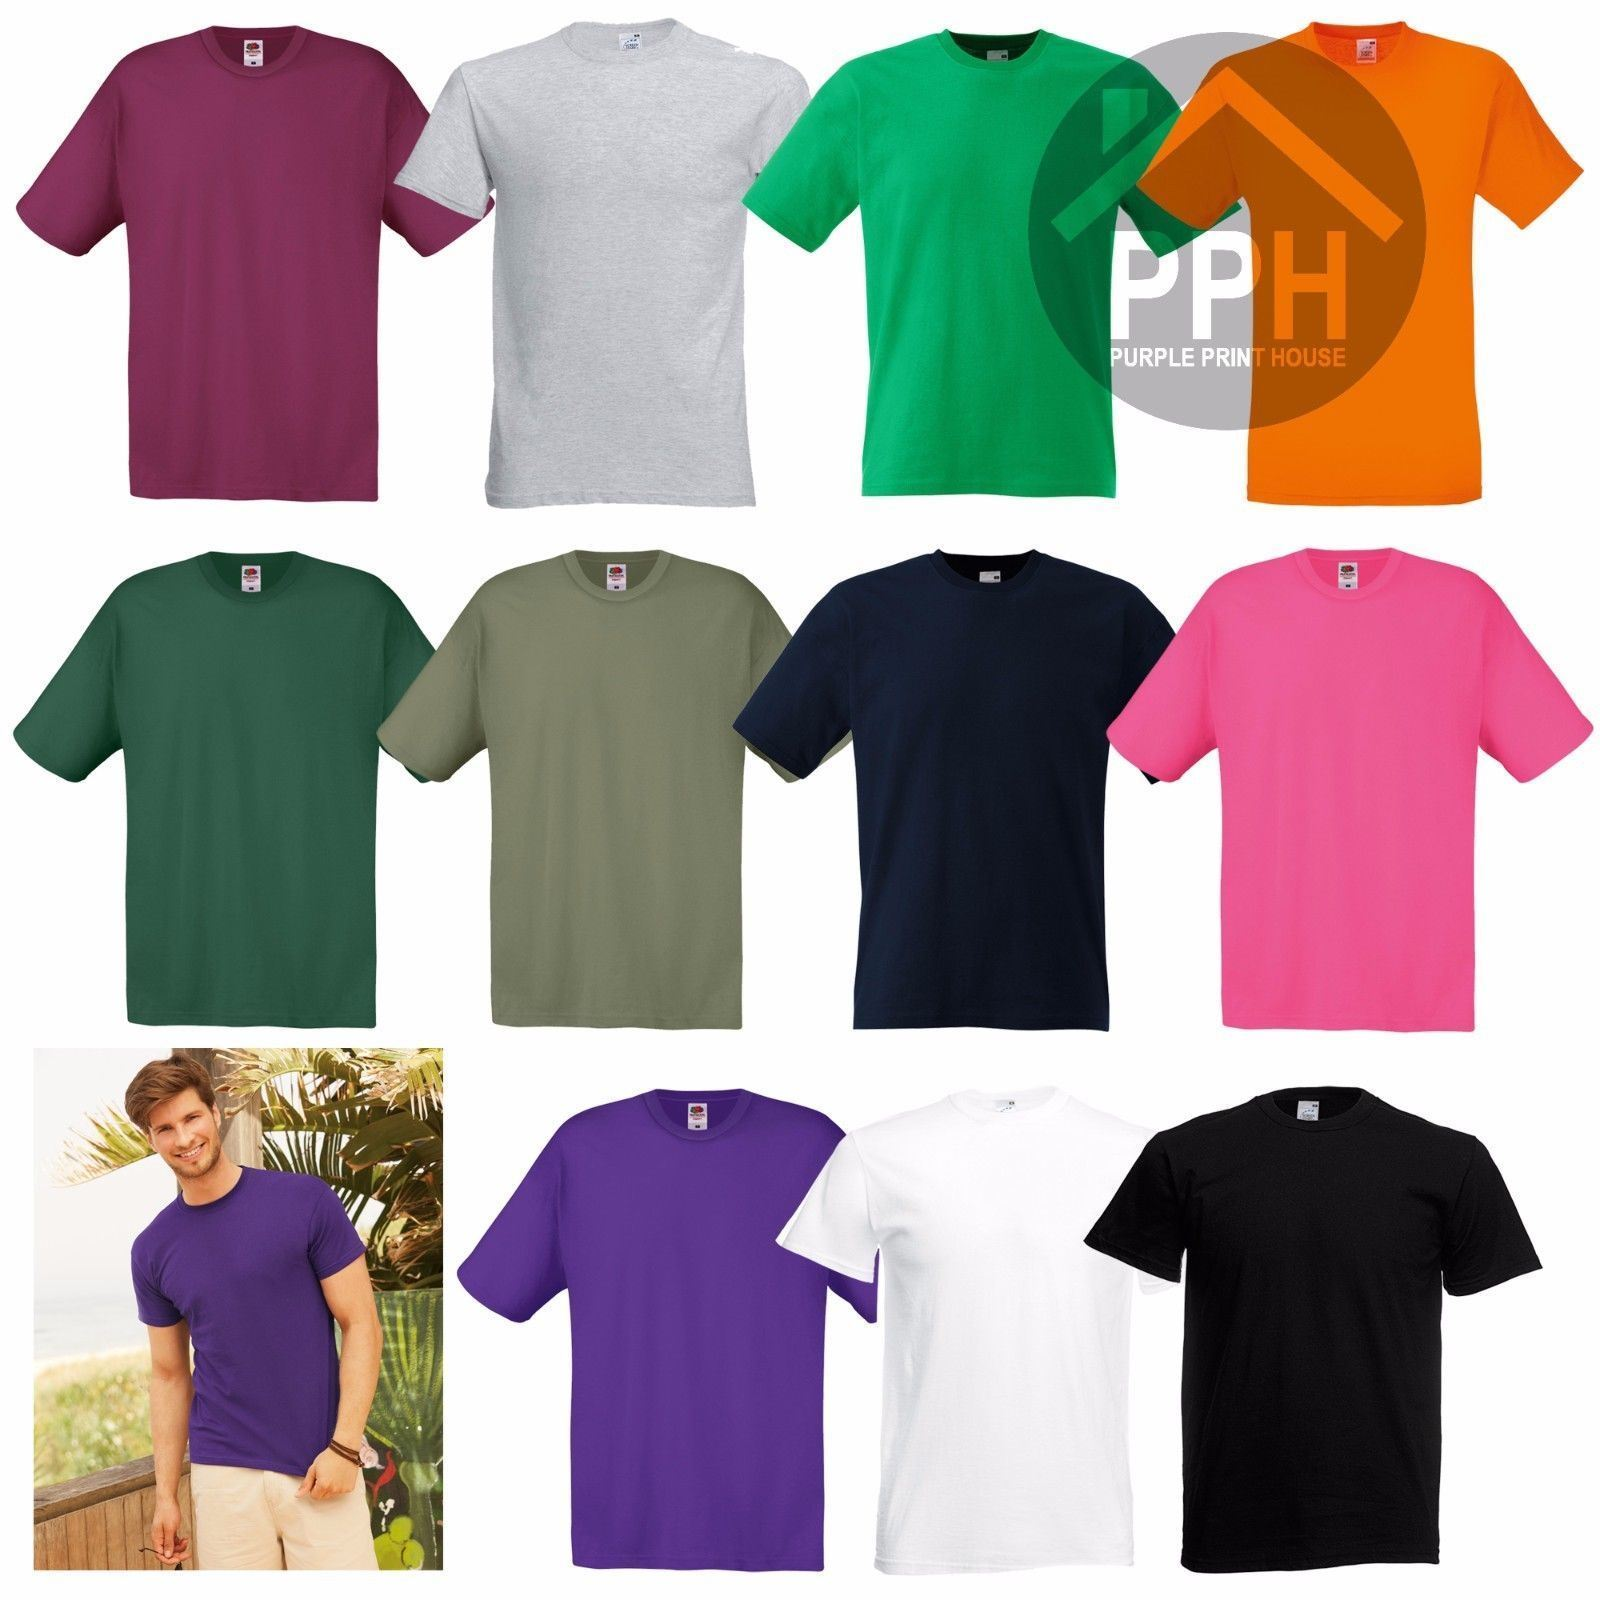 99fd2bf8c Fruit Of The Loom Polo Shirts 100 Cotton - DREAMWORKS